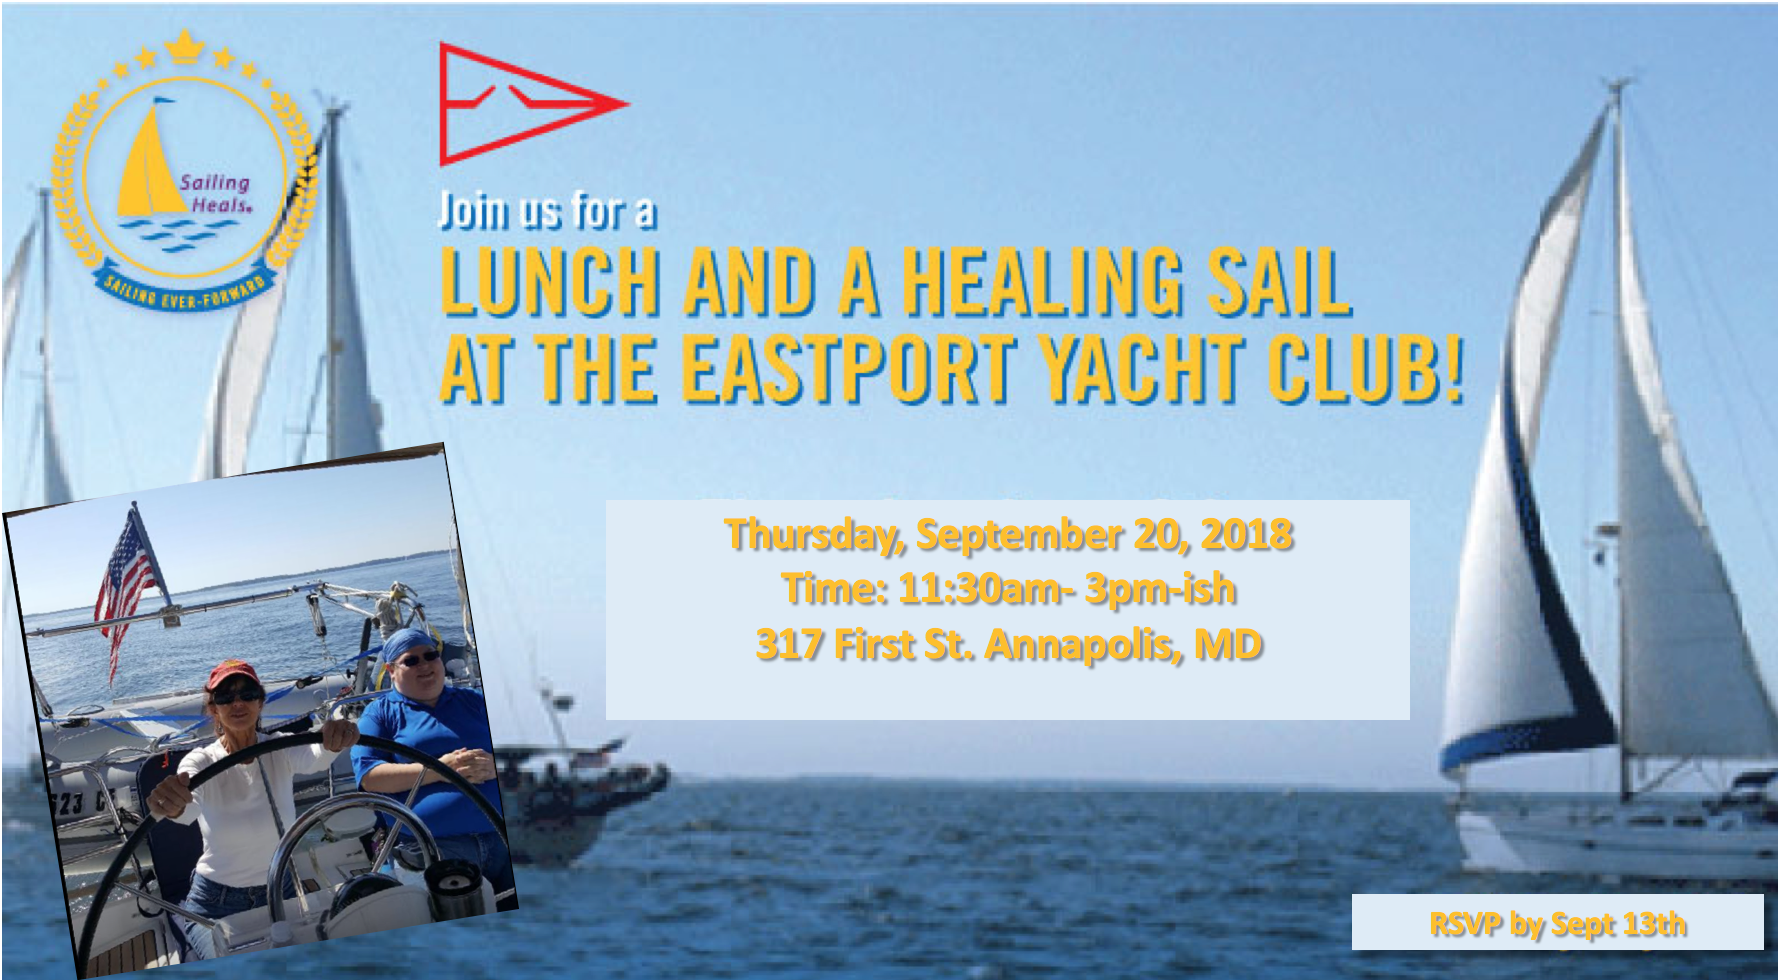 9/20/18 Eastport Yacht Club, Annapolis lunch and sail